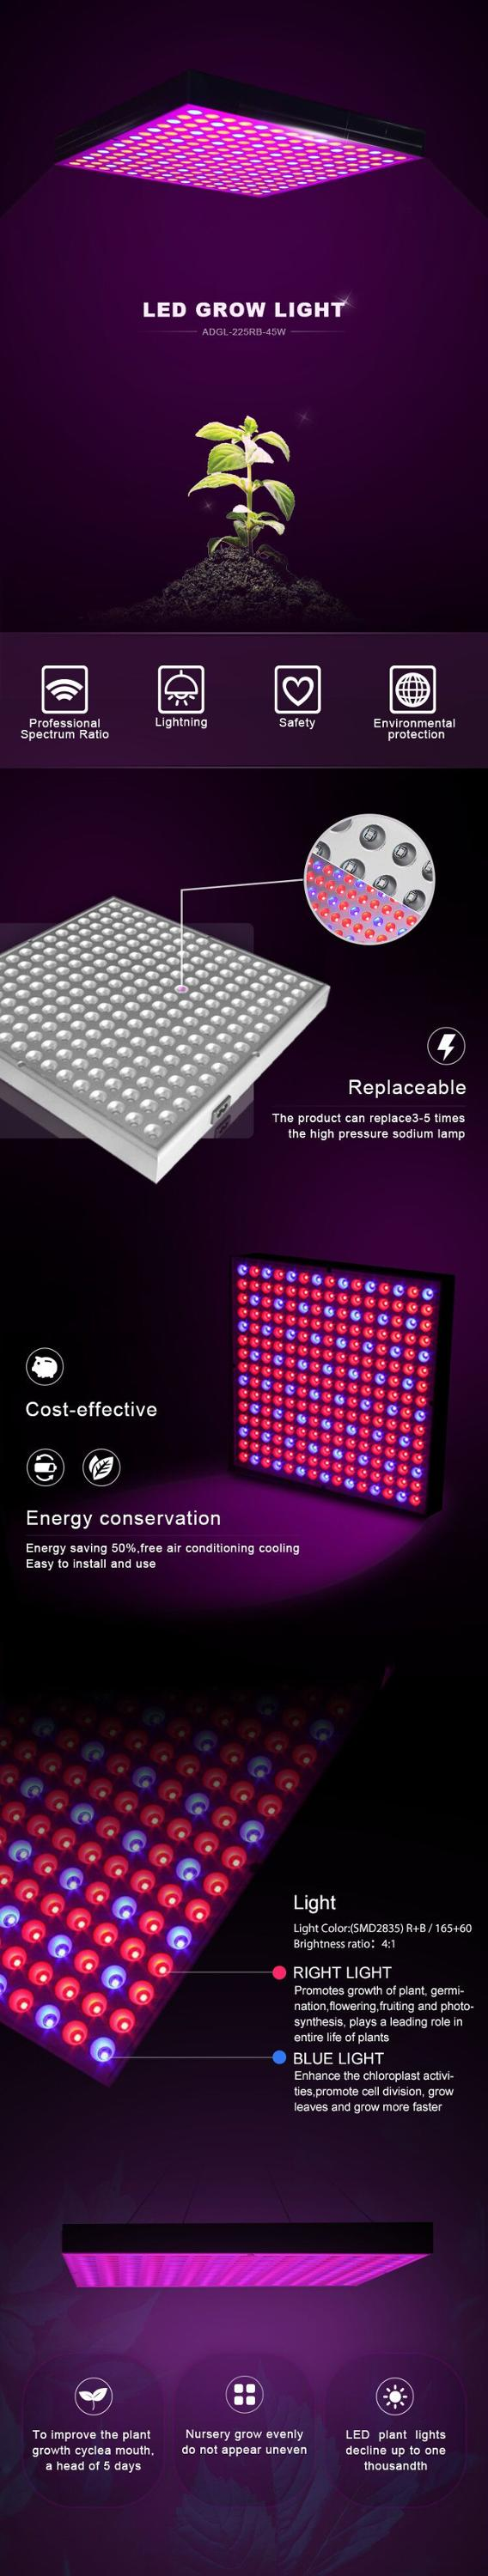 Beste hydrocultuur groeien kit goedkope full spectrum indoor Vierkante 225 pcs leds 45 W diy led grow light panel voor indoor planten